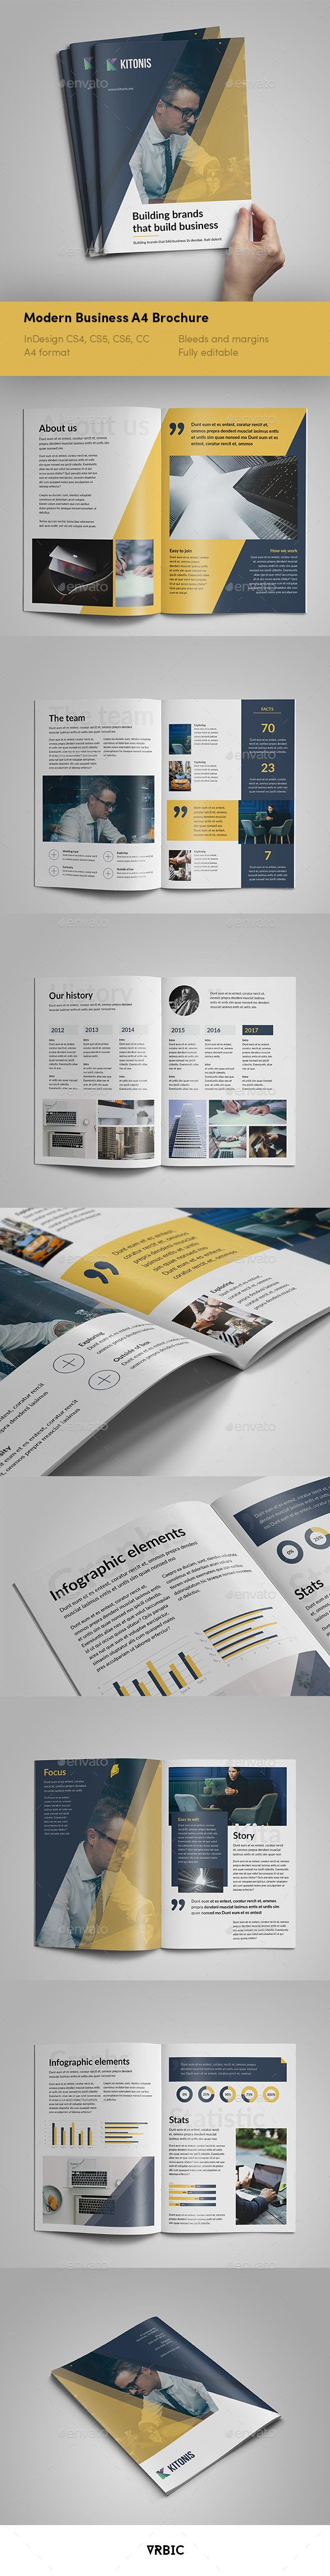 Modern Business A4 Brochure - #InDesign Template - #Brochures Print Templates